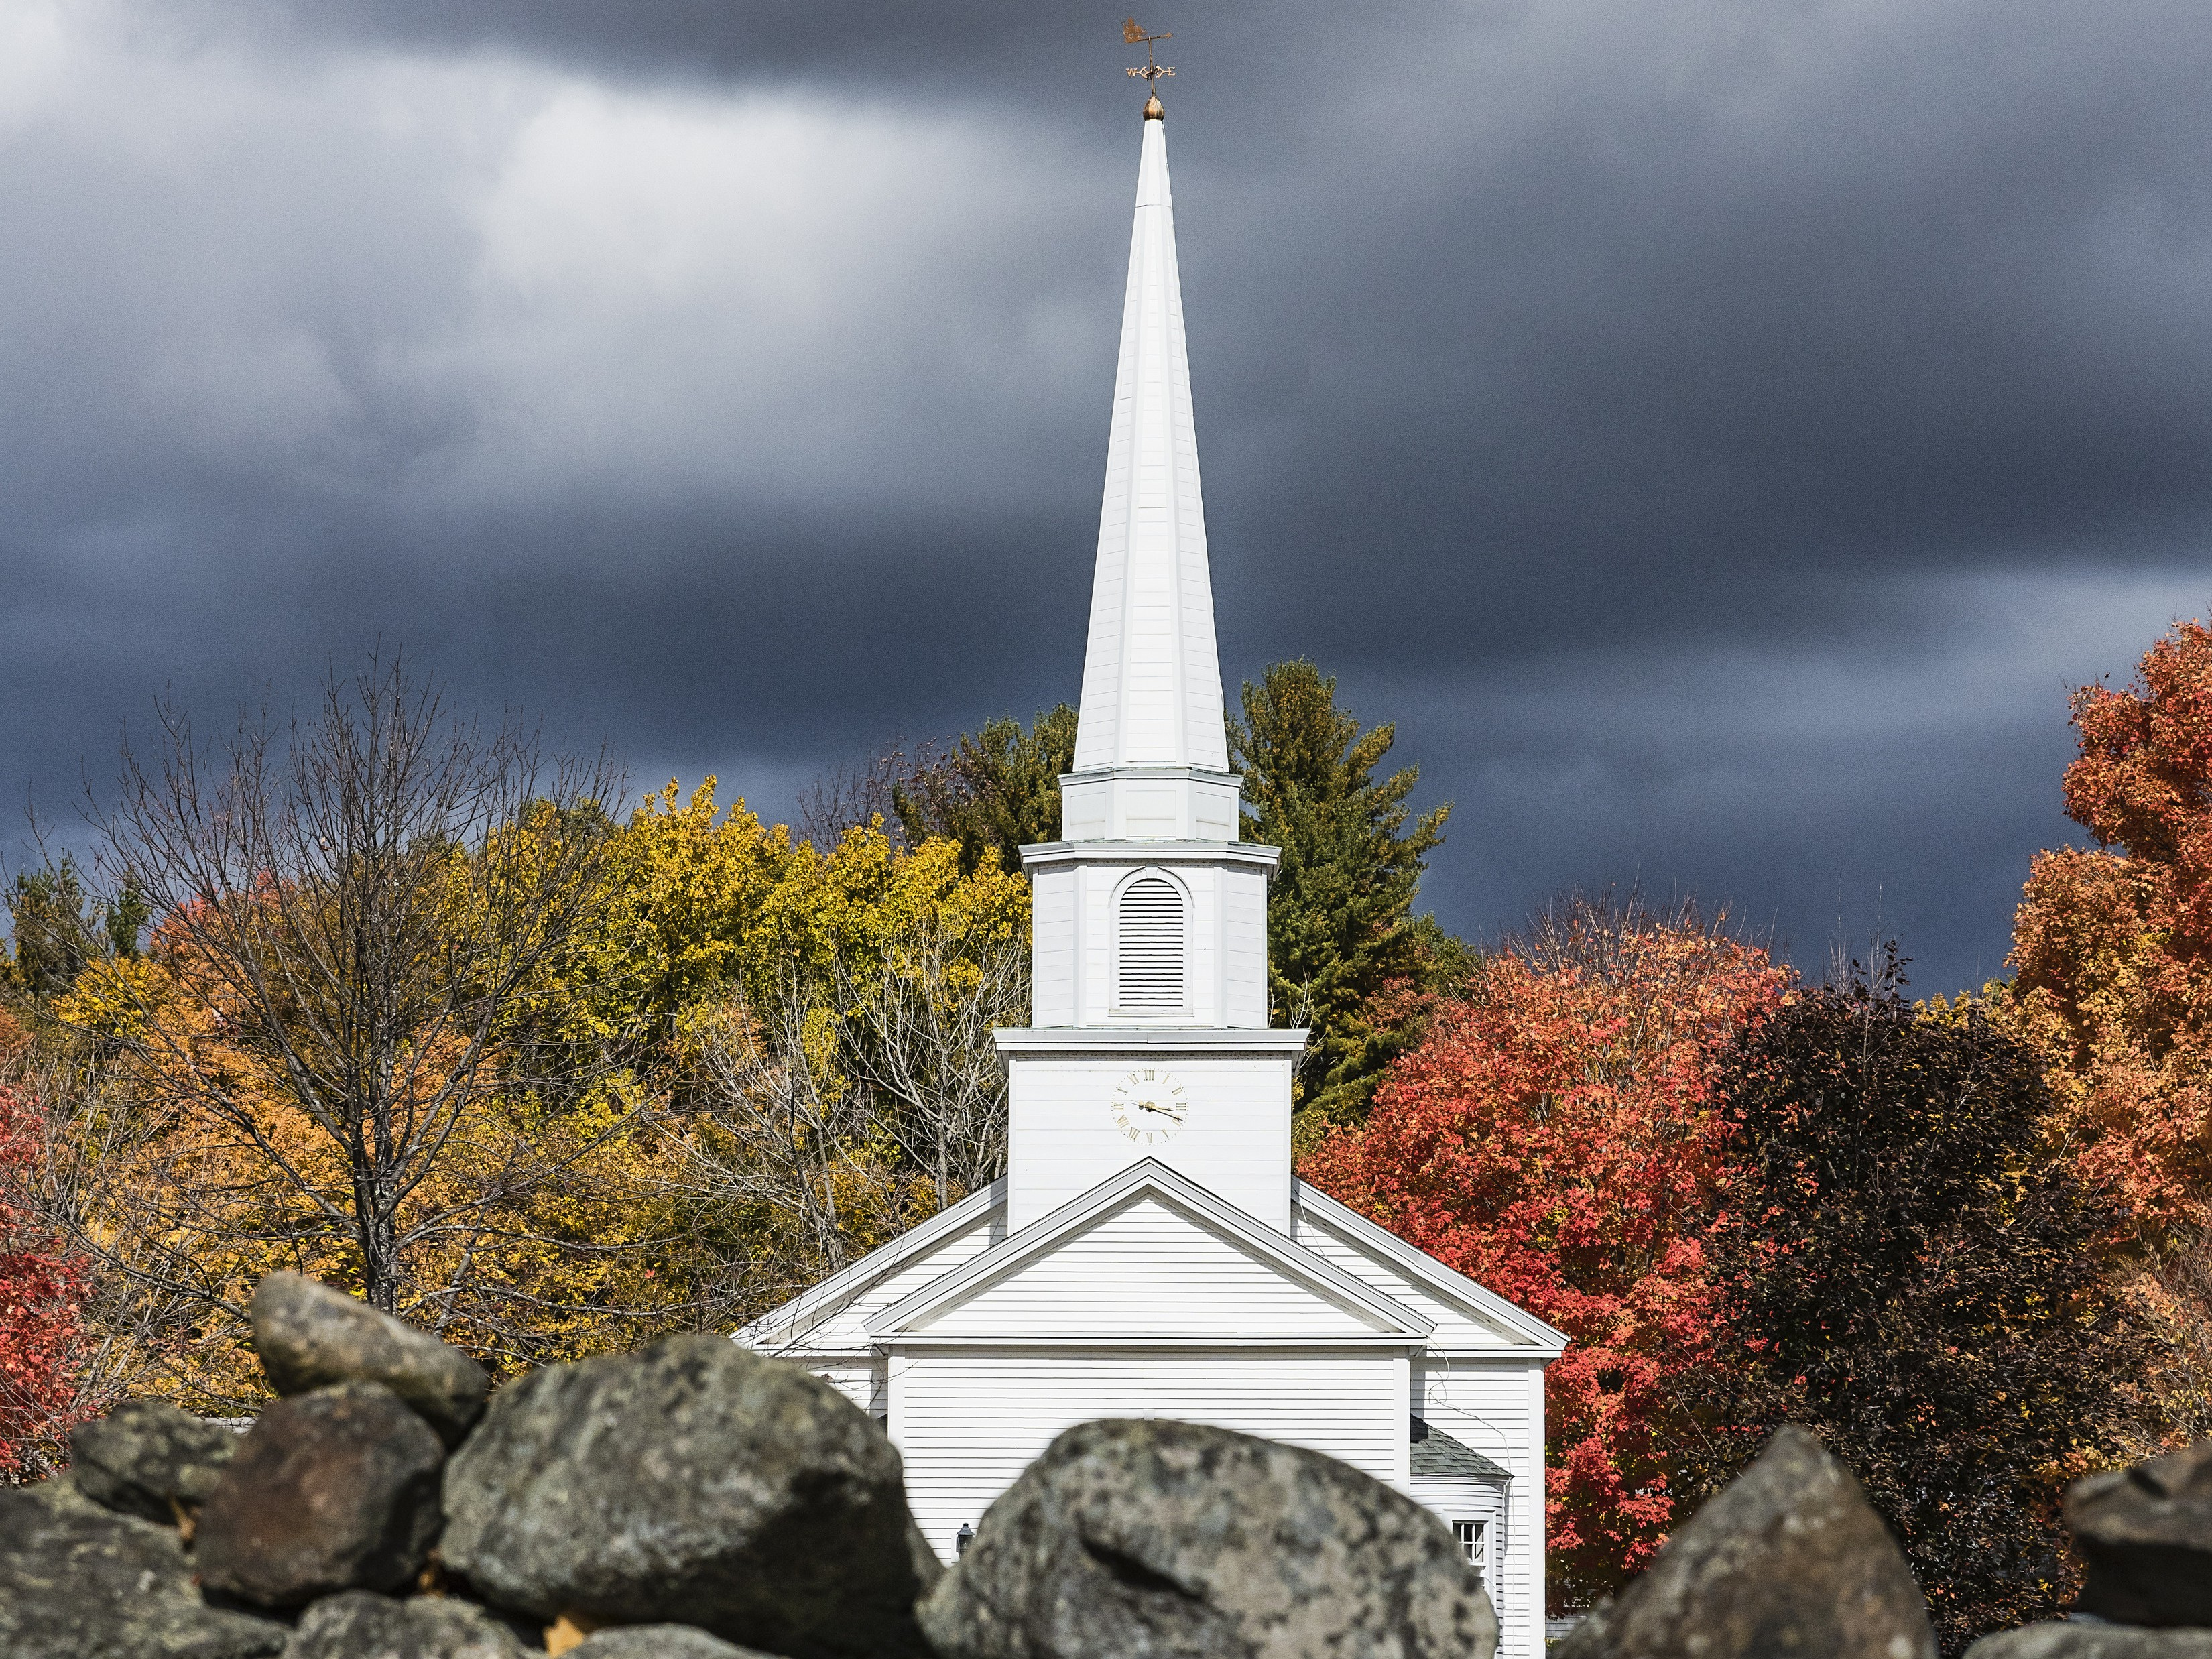 Charming New England church and stone wall in the village of